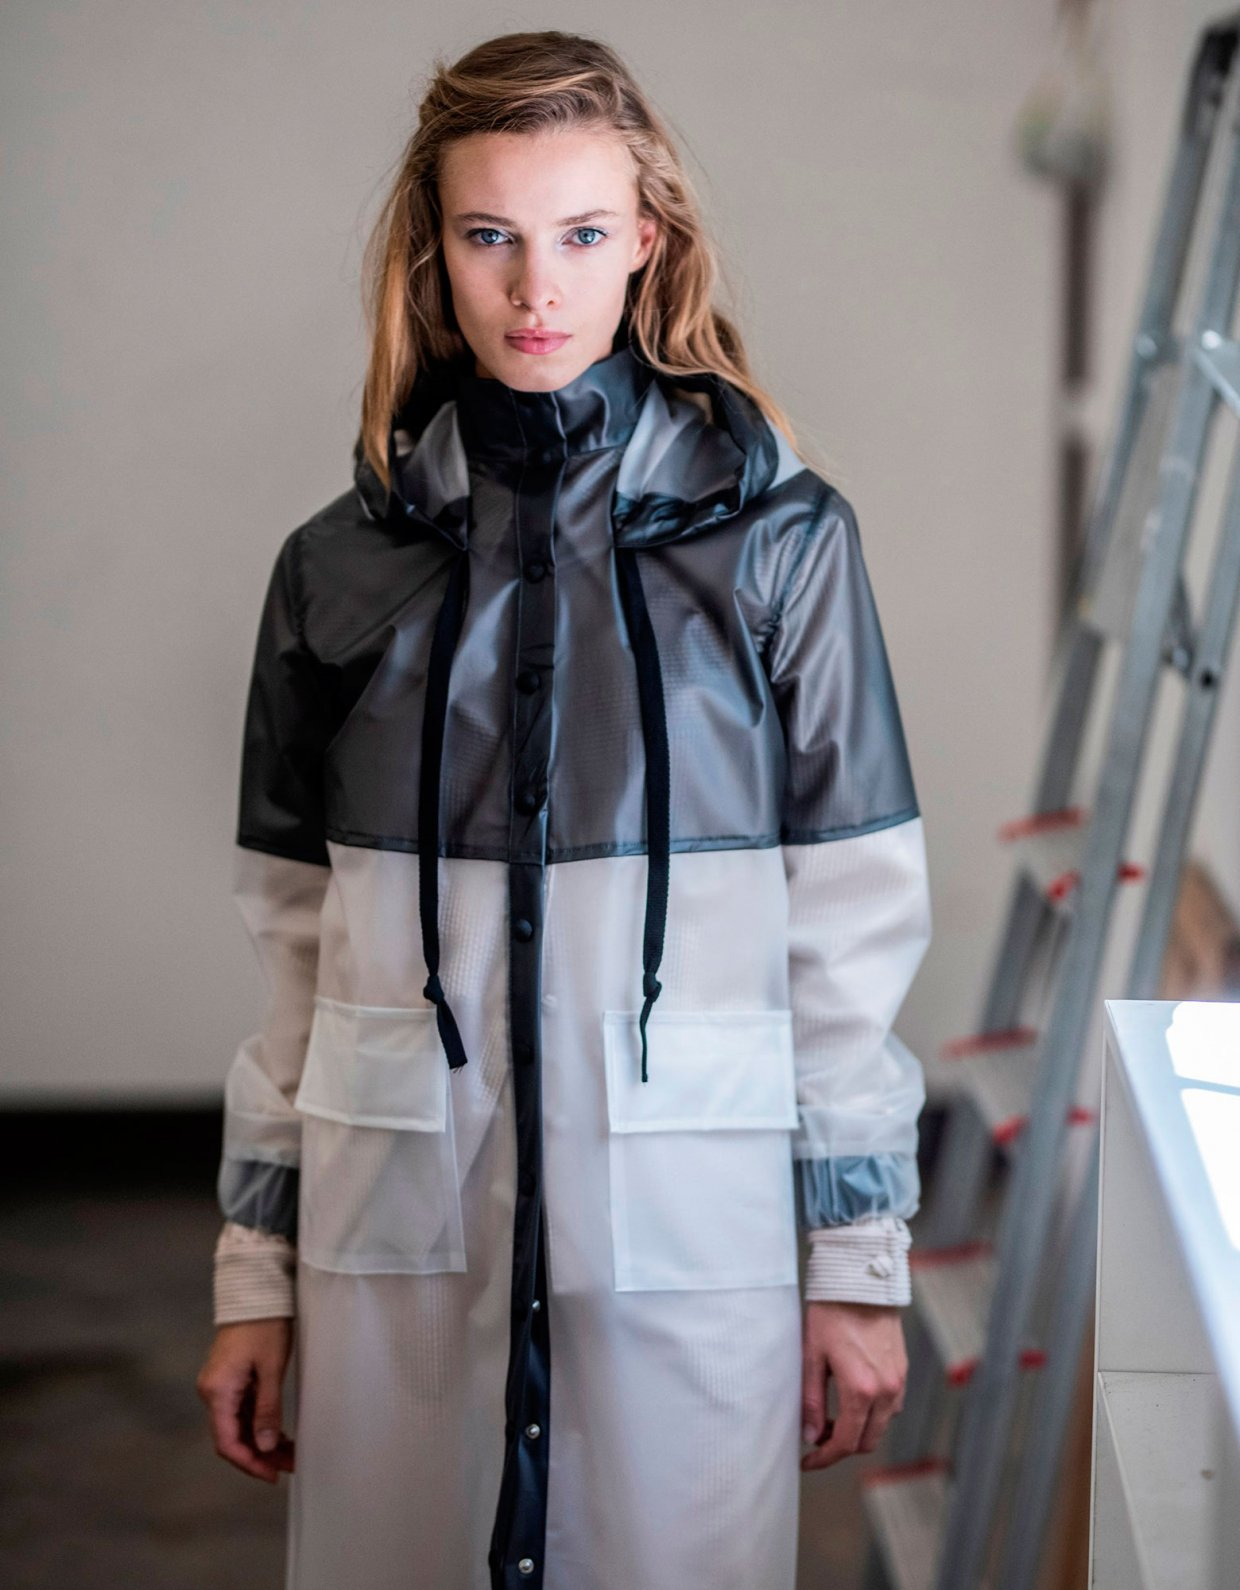 Nadia Rapti Raining pleasure windproof jacket